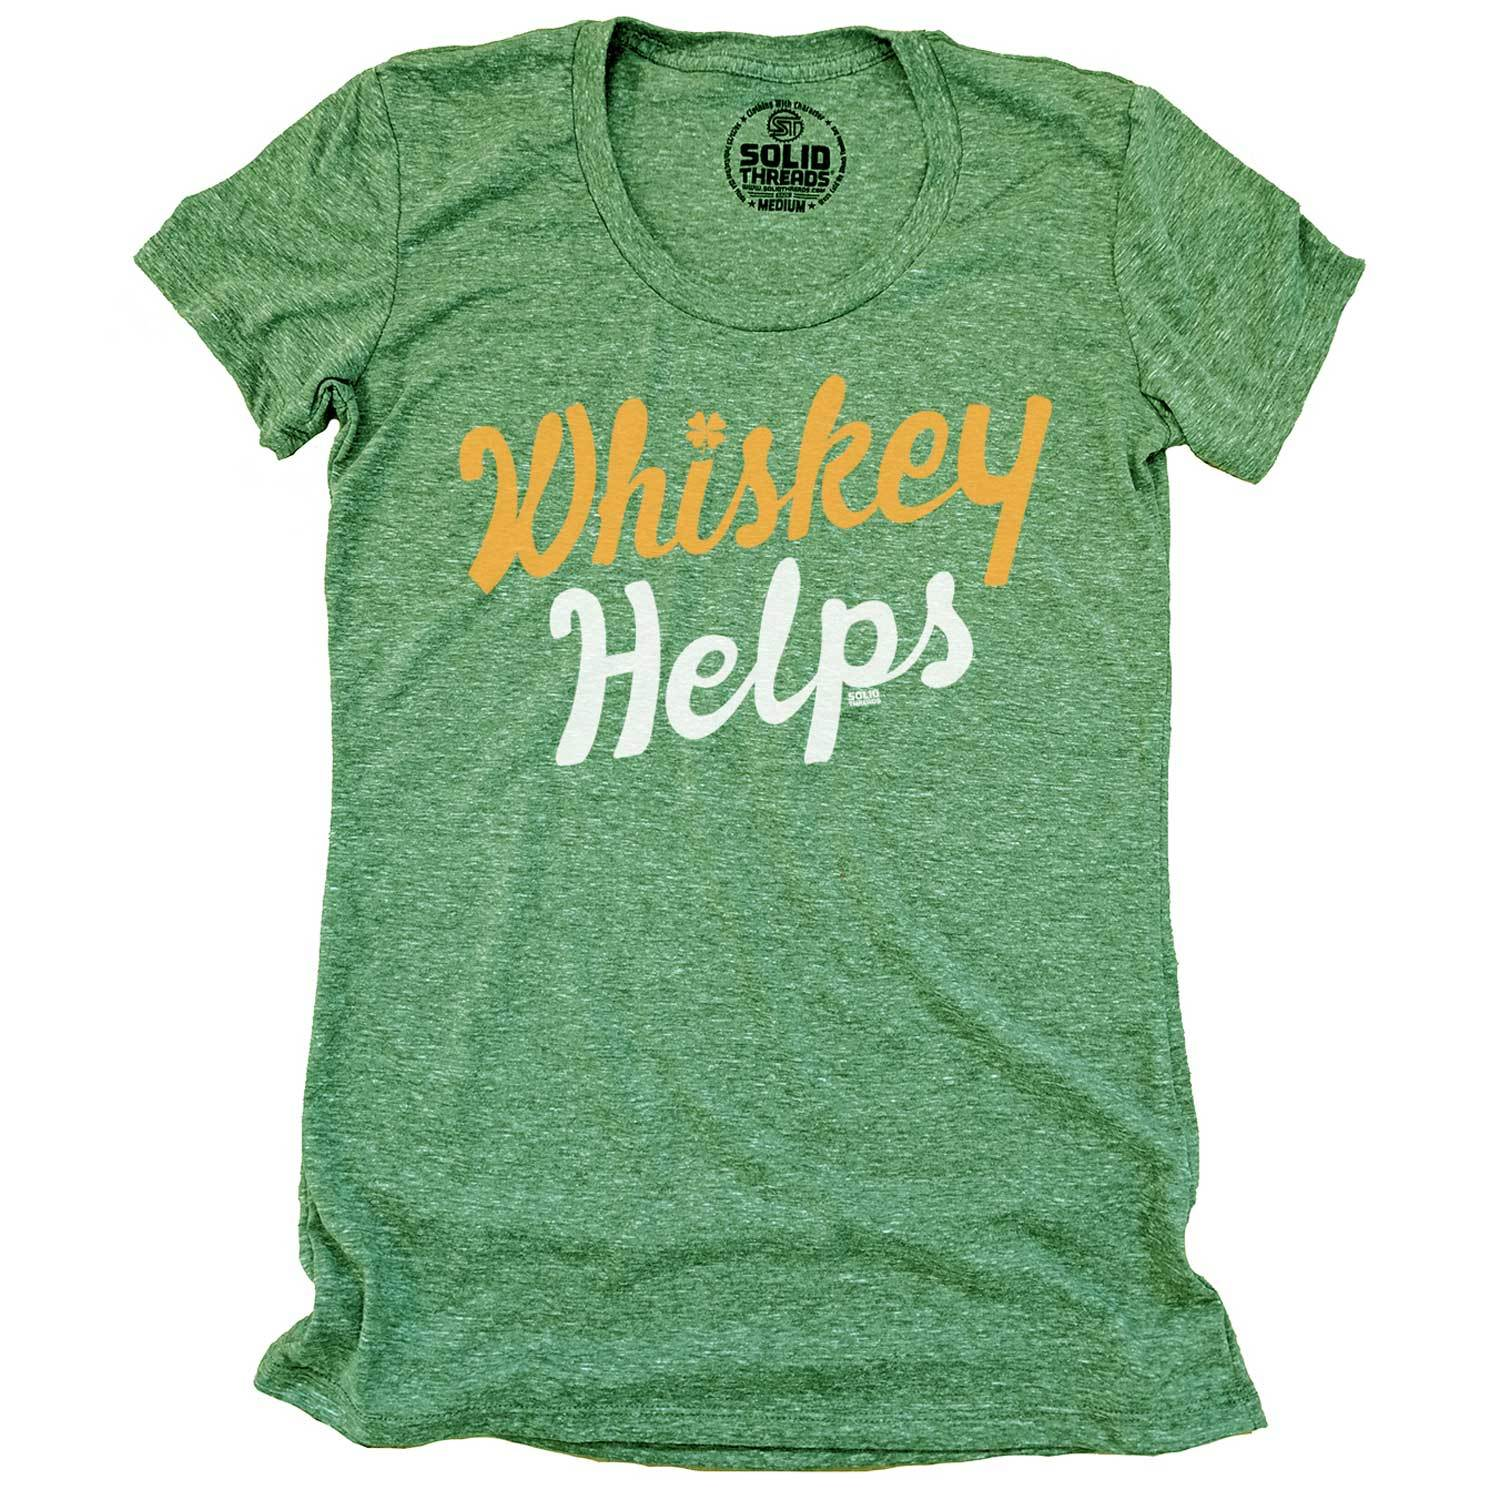 Women's Irish Whiskey Helps Vintage Inspired Scoopneck Tee with cool, St. Paddy's graphic | Solid Threads